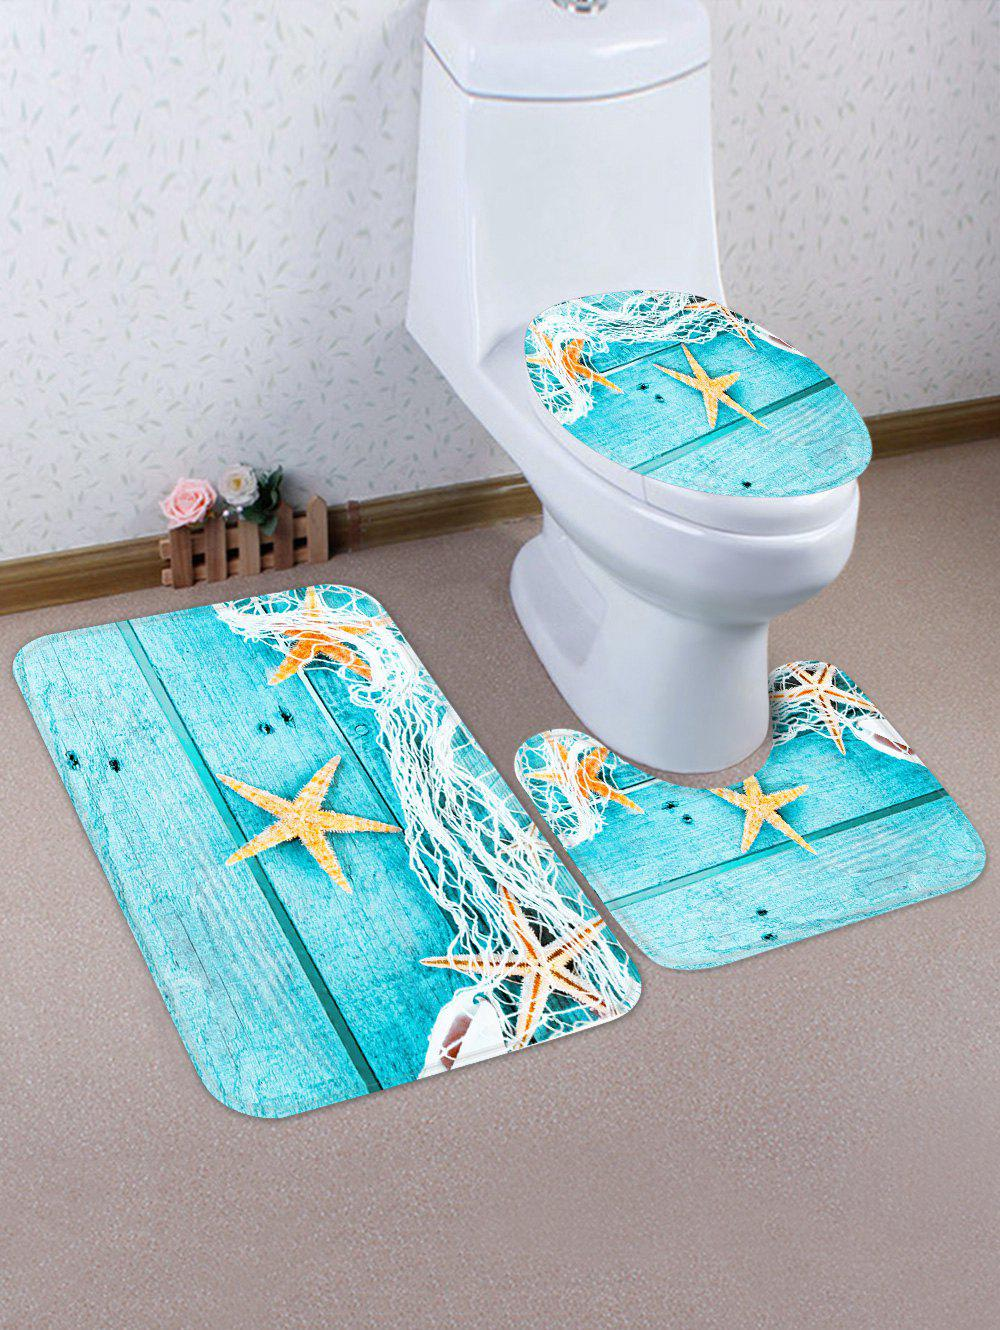 Starfish Wooden Printed 3 Pcs Bathroom Toilet Mat - BLUE ZIRCON